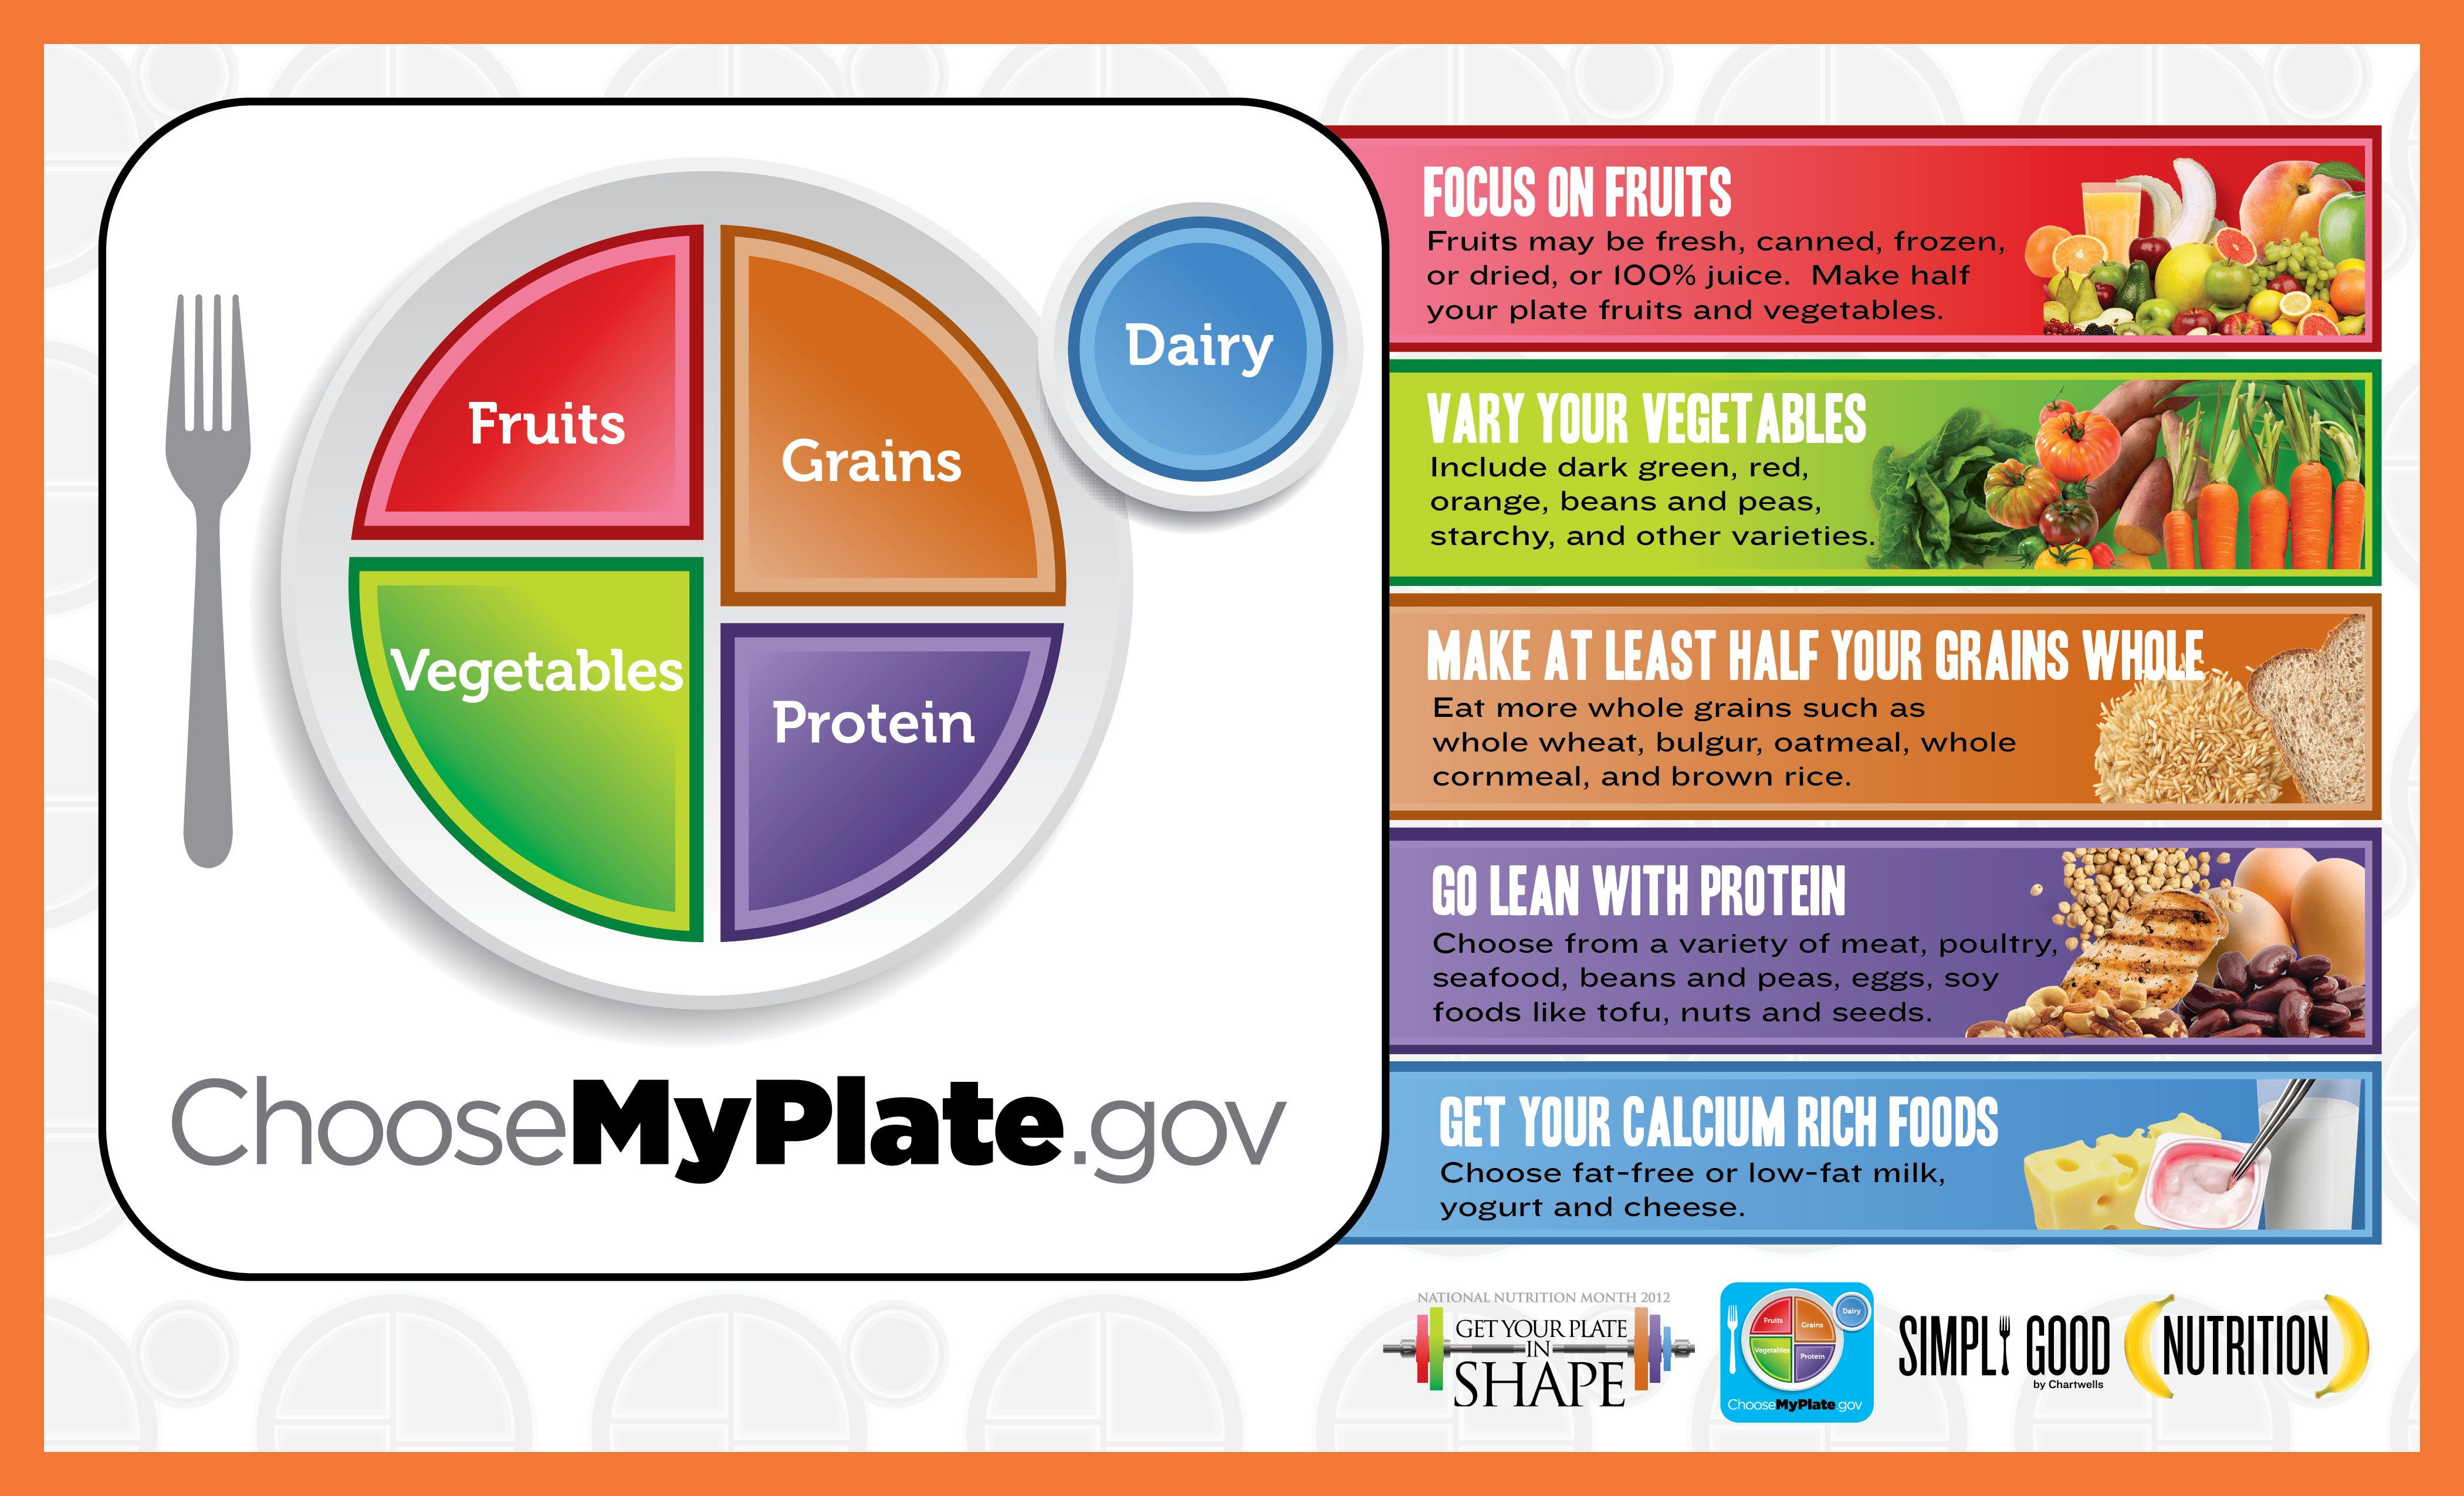 image about My Plate Printable Placemat referred to as MyPlate placemat Dietetics Bariatric ingesting, Foods